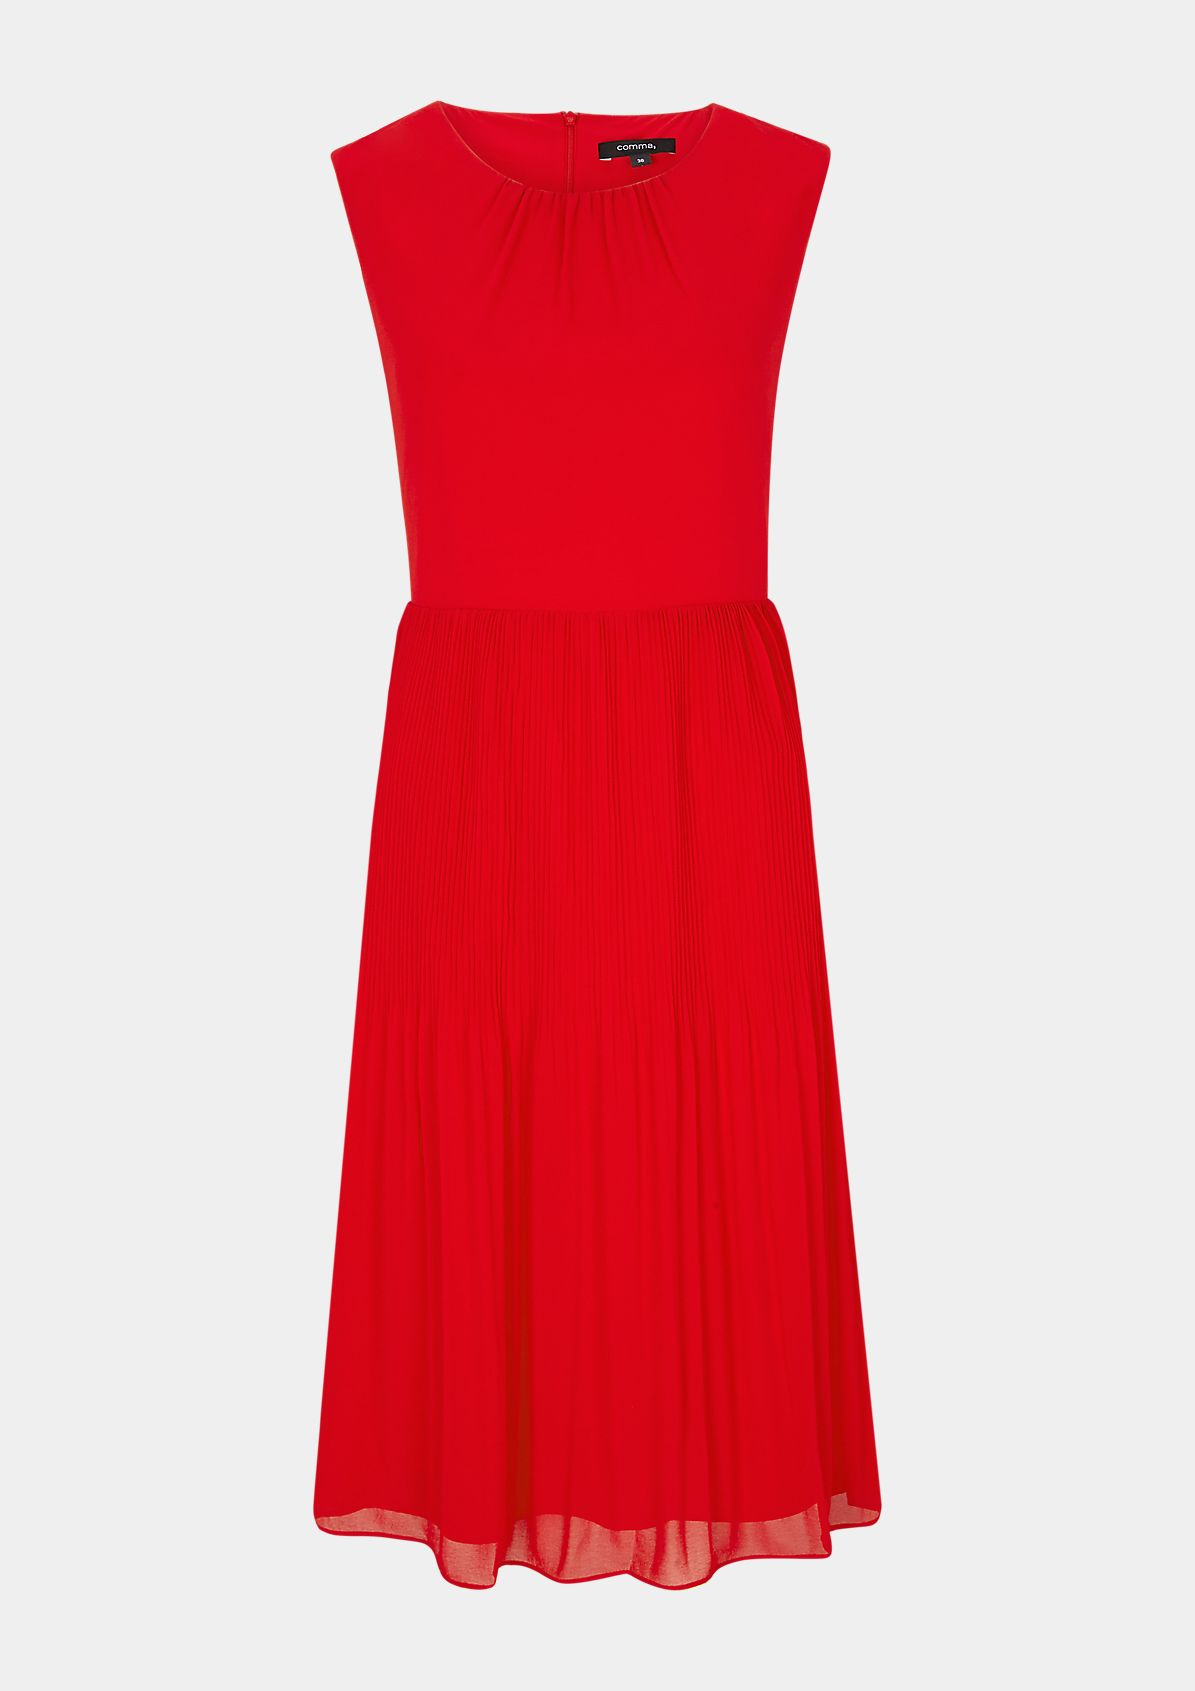 Dress with a pleated skirt section from comma